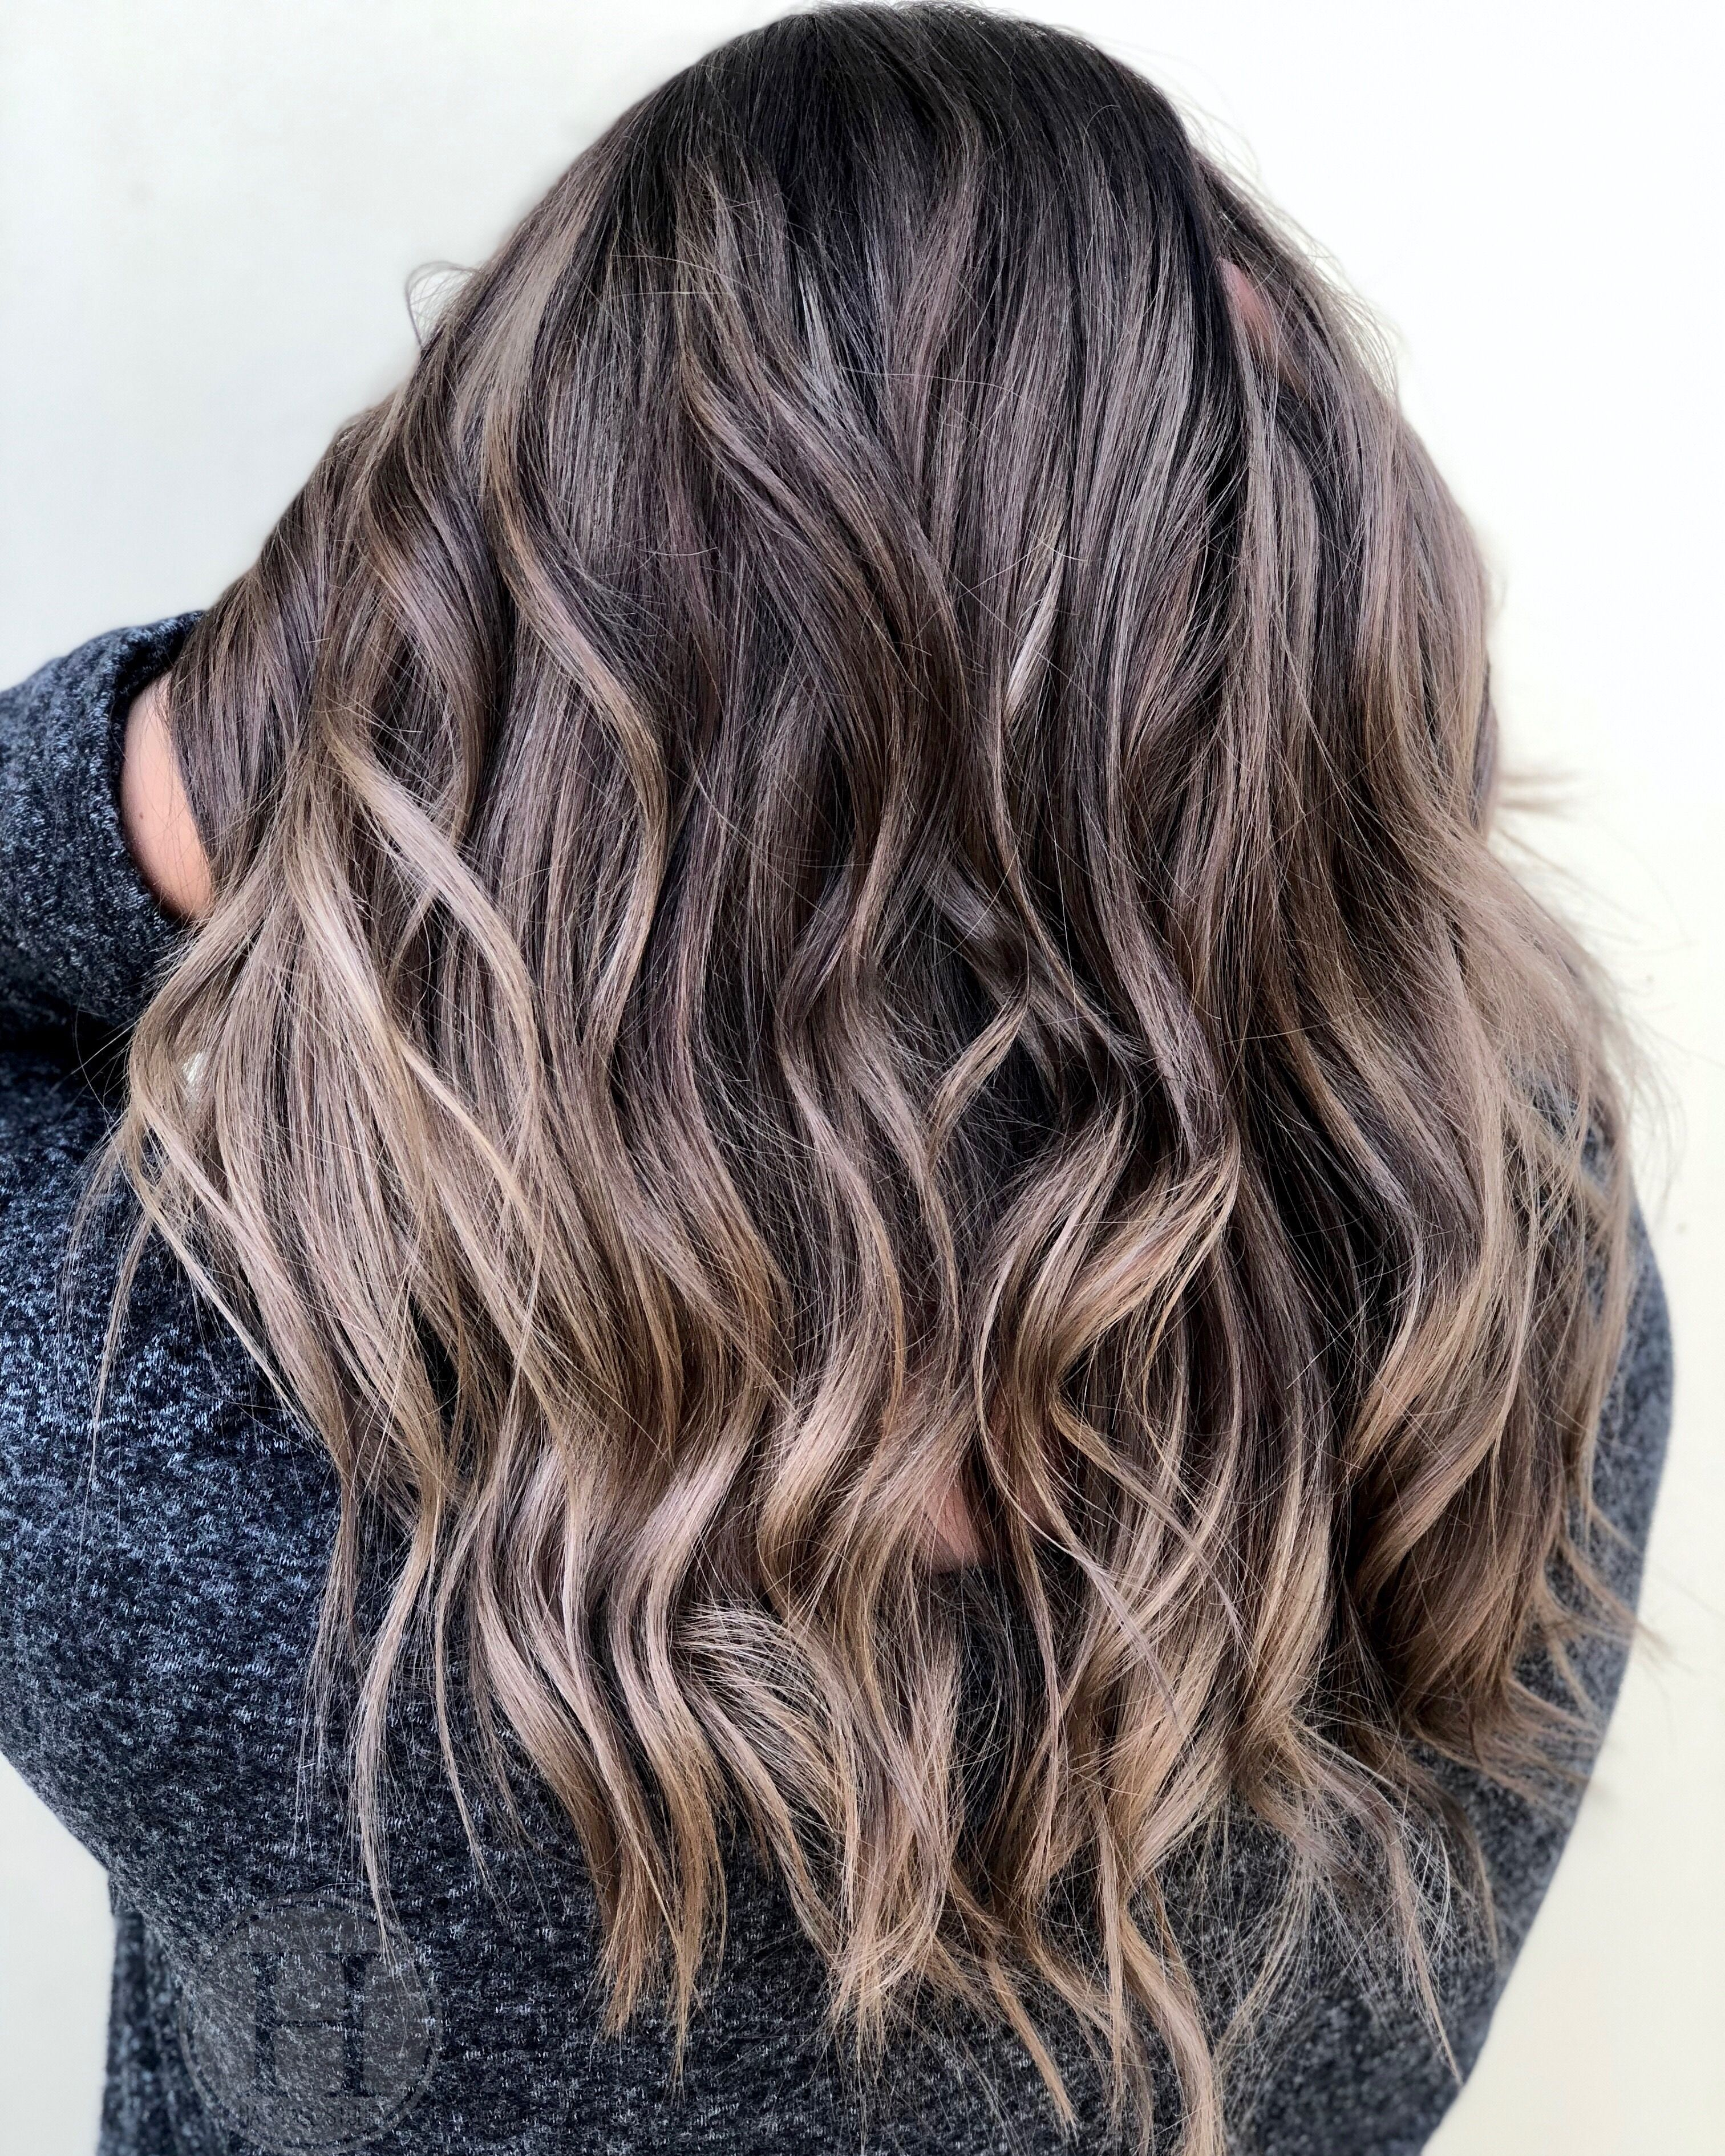 Chocolate Balayage Pulpriot Hair New Permanent Semi Demi Color